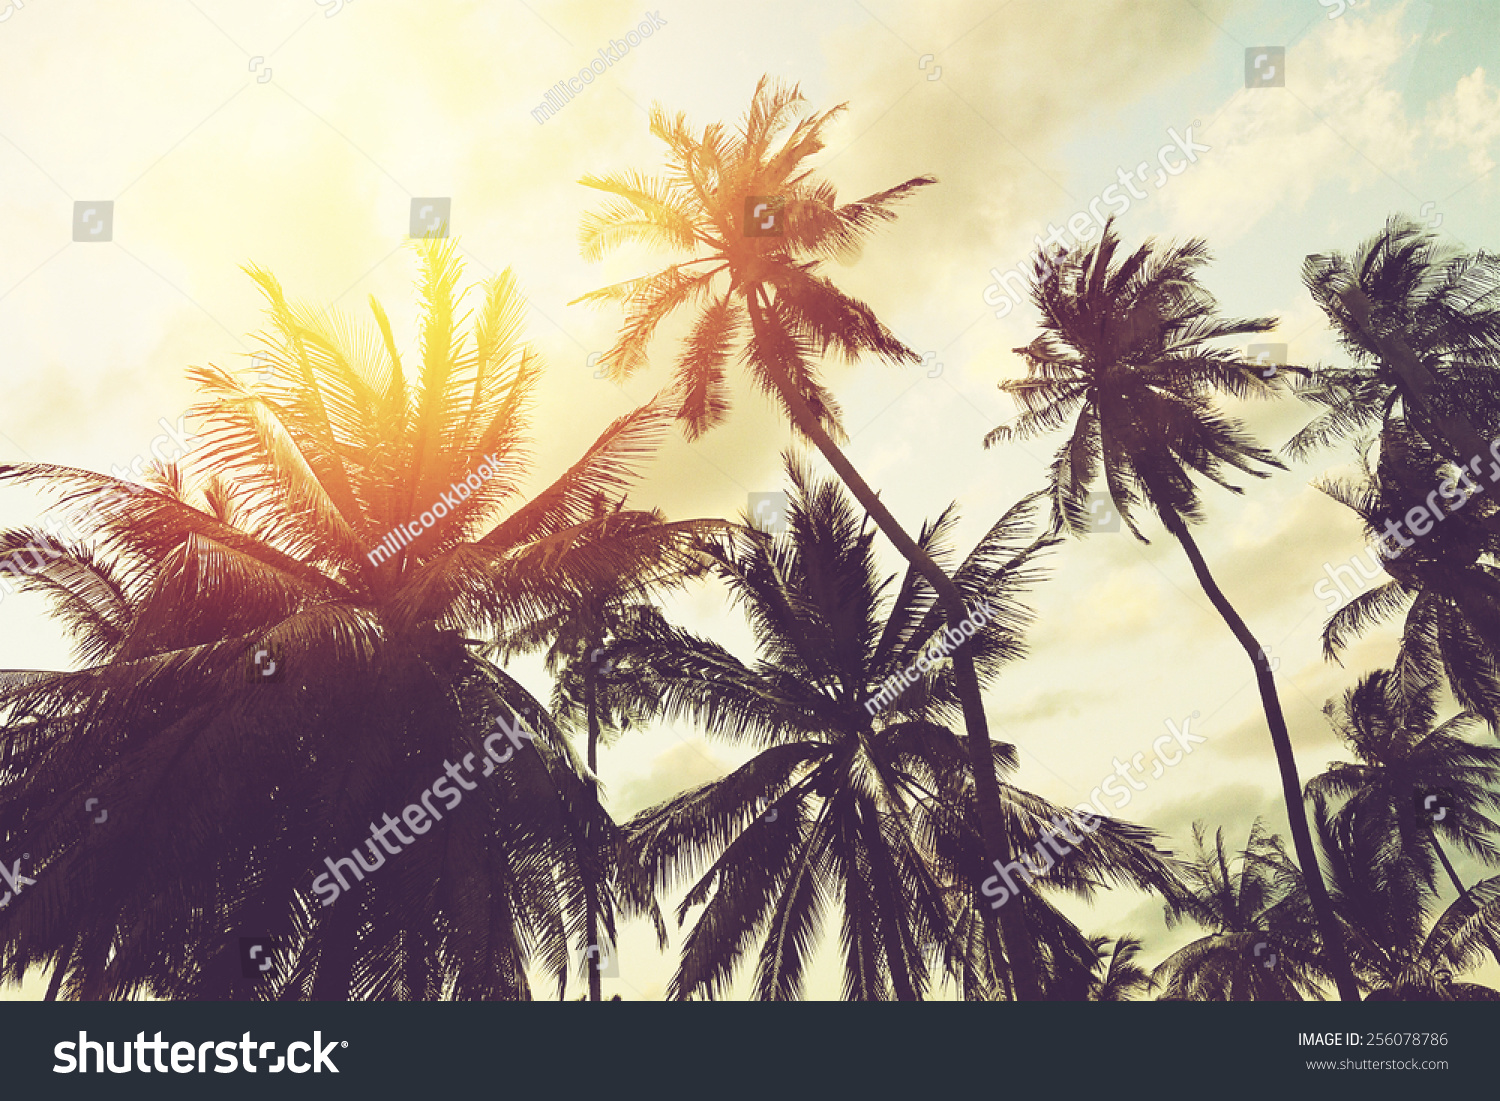 Retro Palm Wallpaper PC Most Beautiful Images